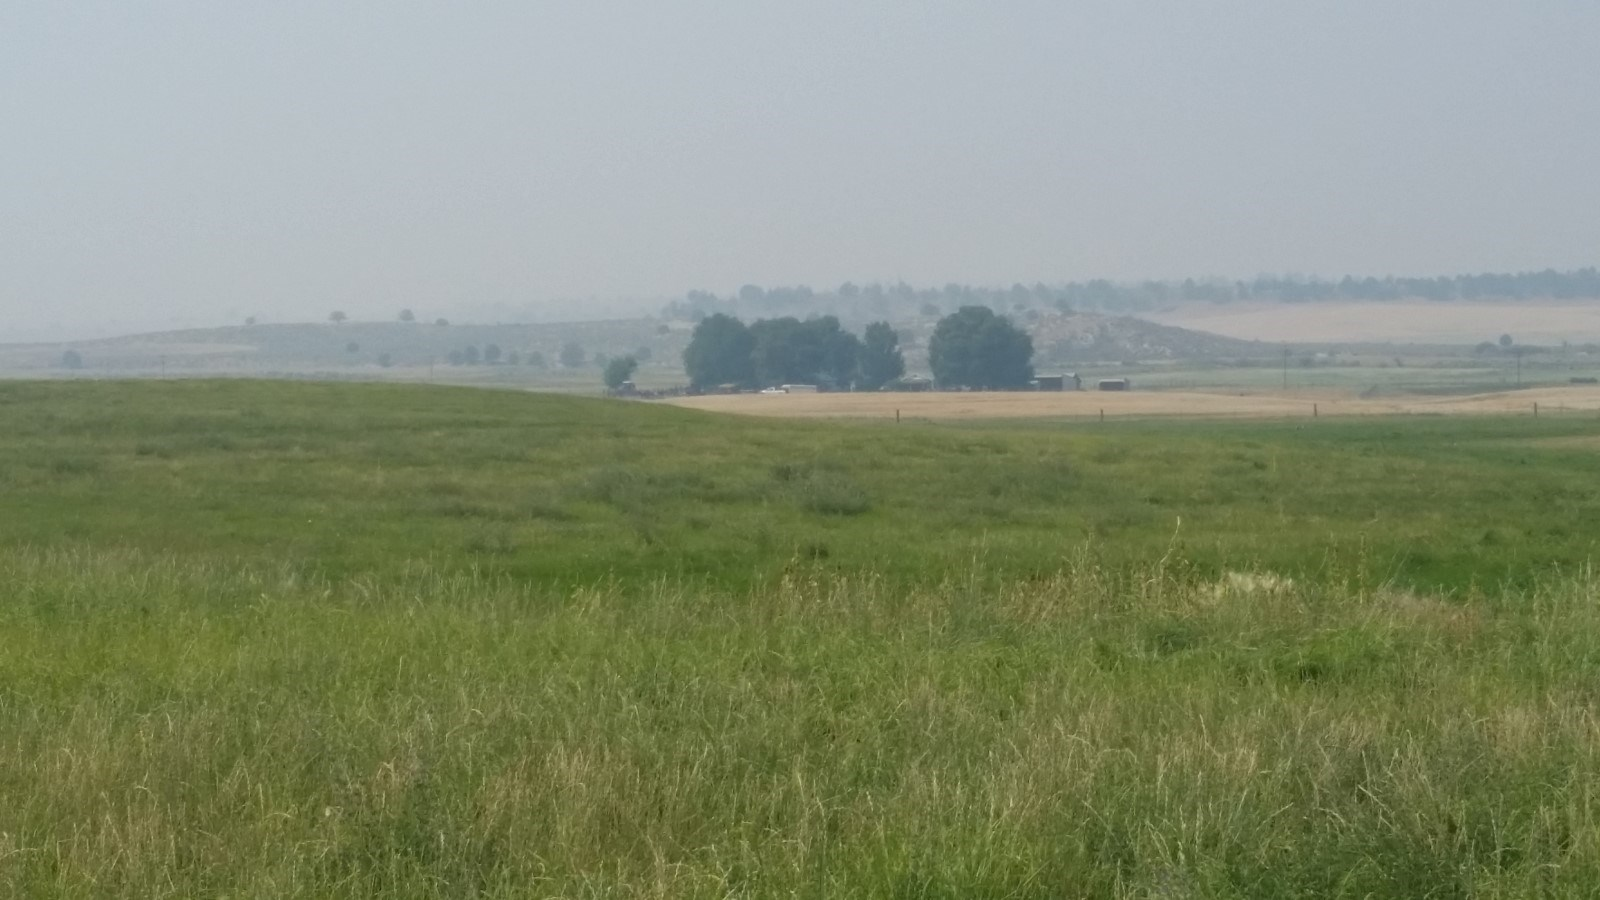 River Front Ranch: 851 Acres w/Home/Water Rights/Irrigation/